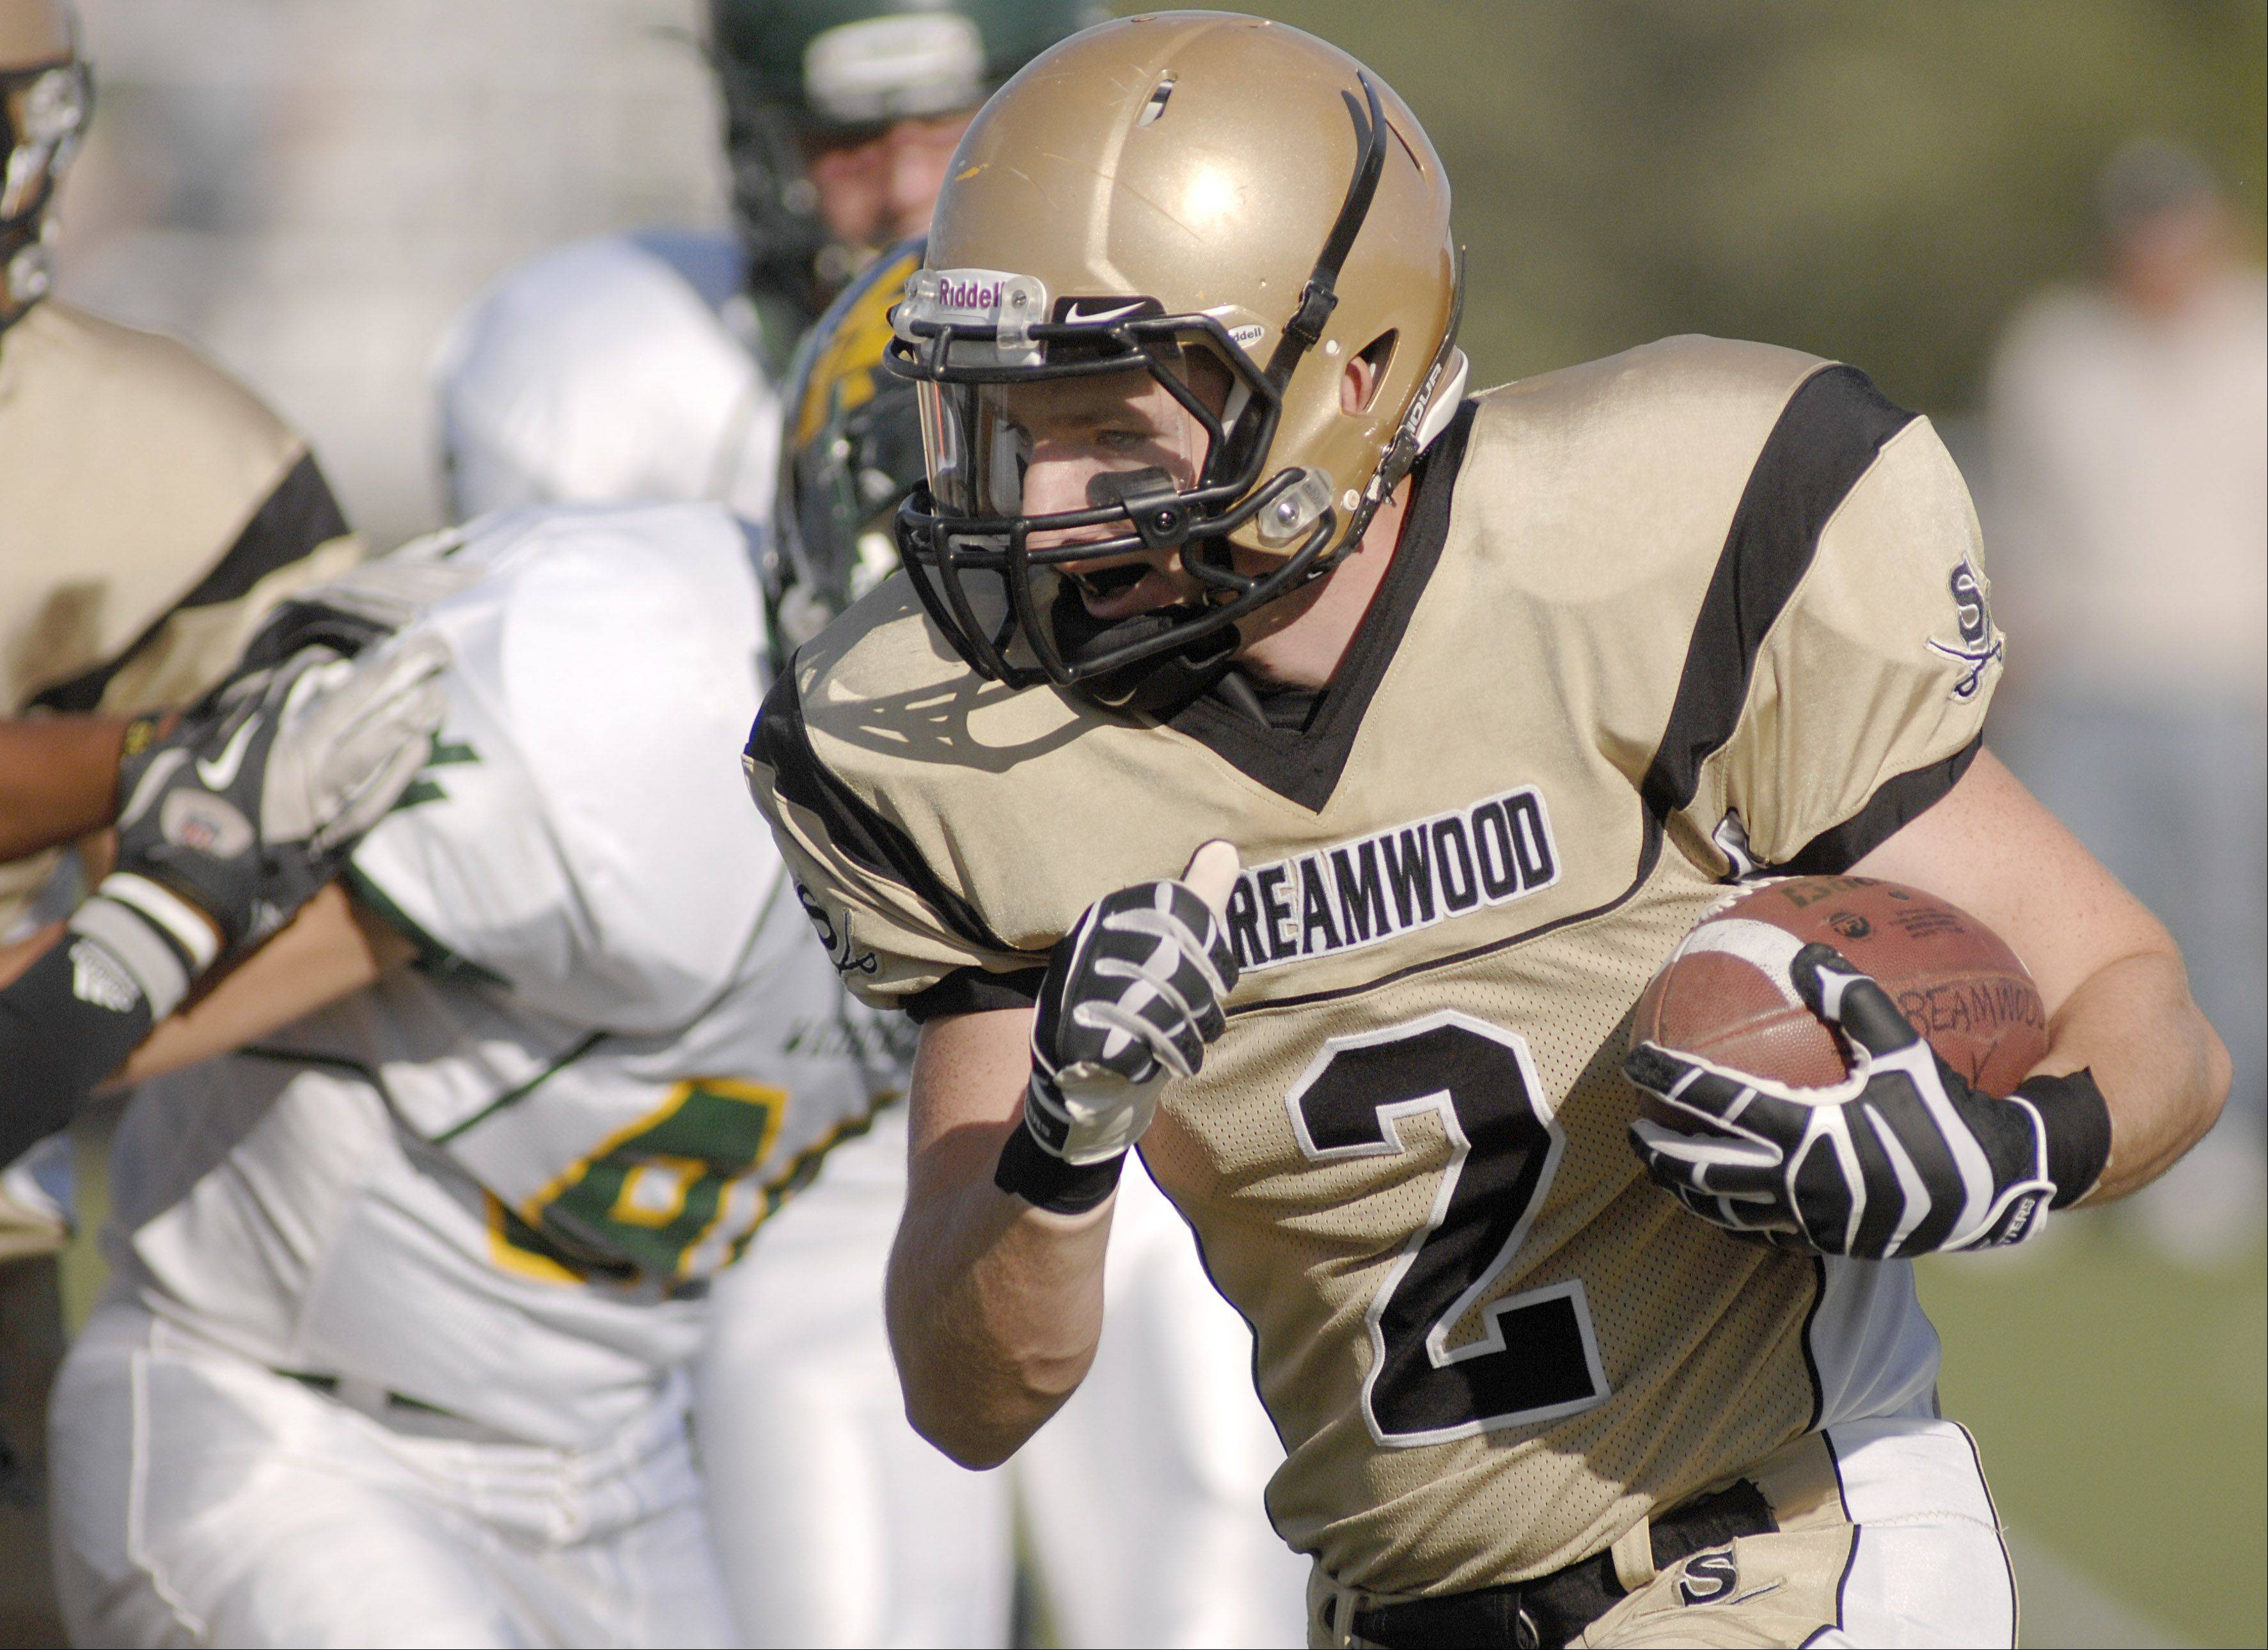 Streamwood's Tyler Hendershot in the first quarter on Saturday, September 8.